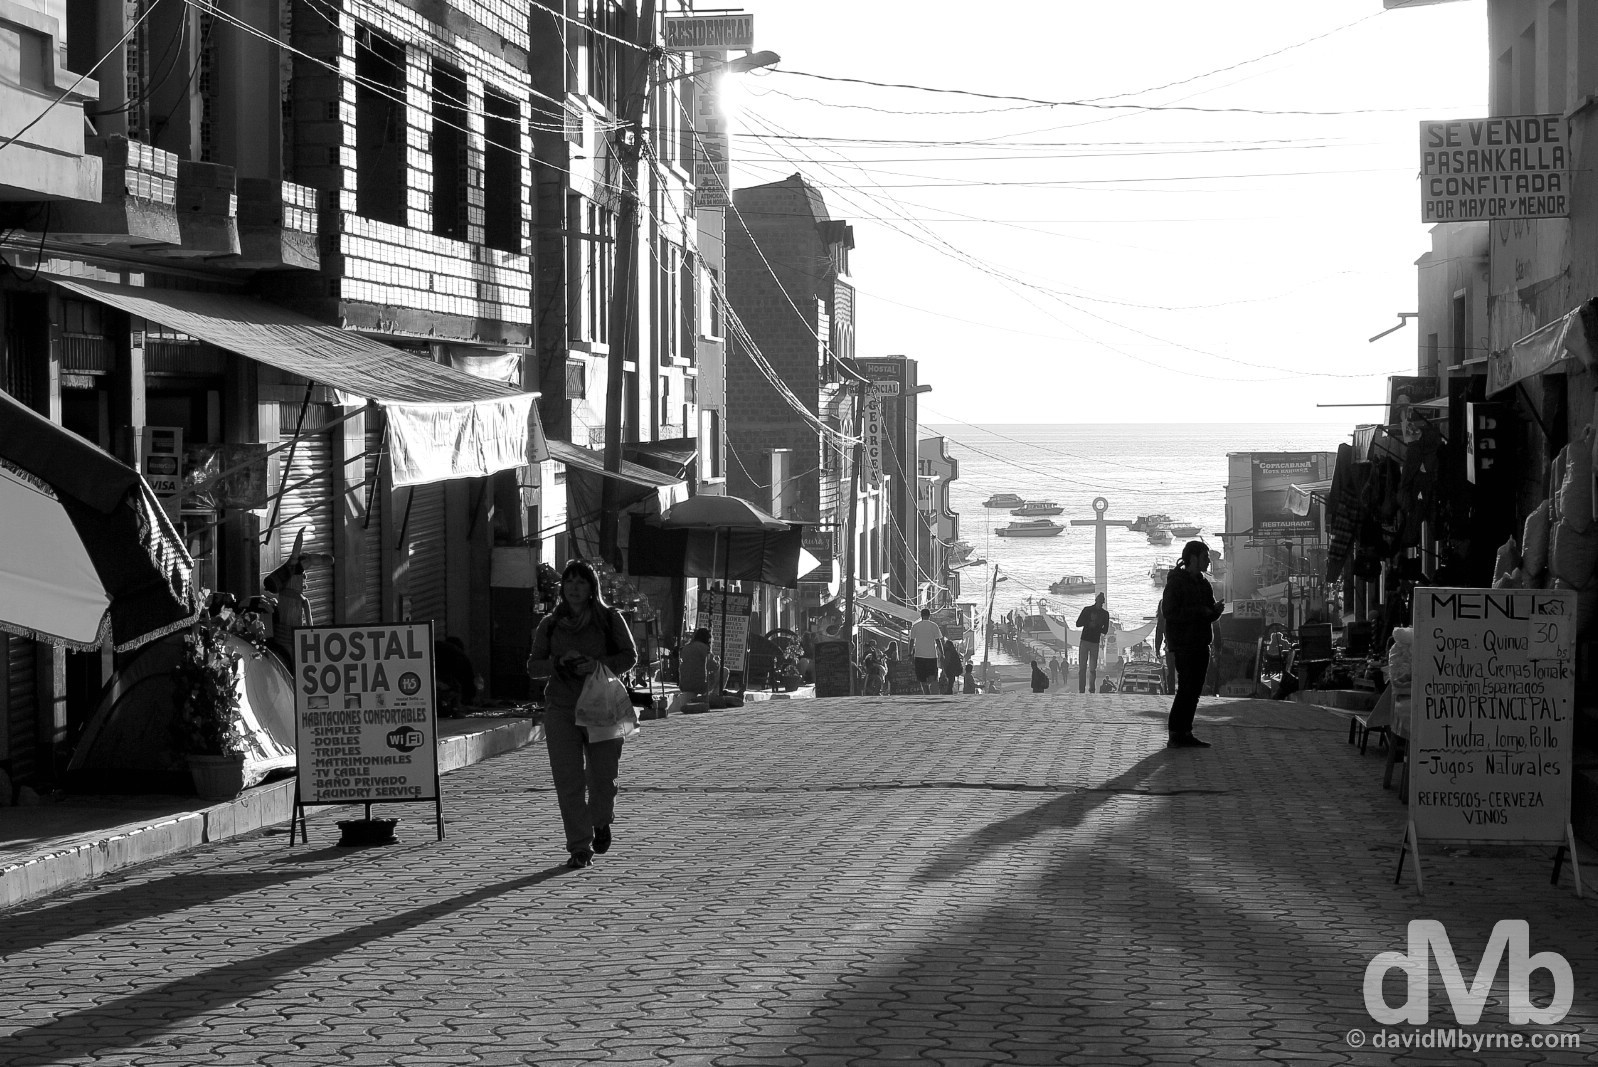 Late afternoon shadows on Avenue 6 de Agosto, tourist central in Copacabana, Bolivia. August 24, 2015.